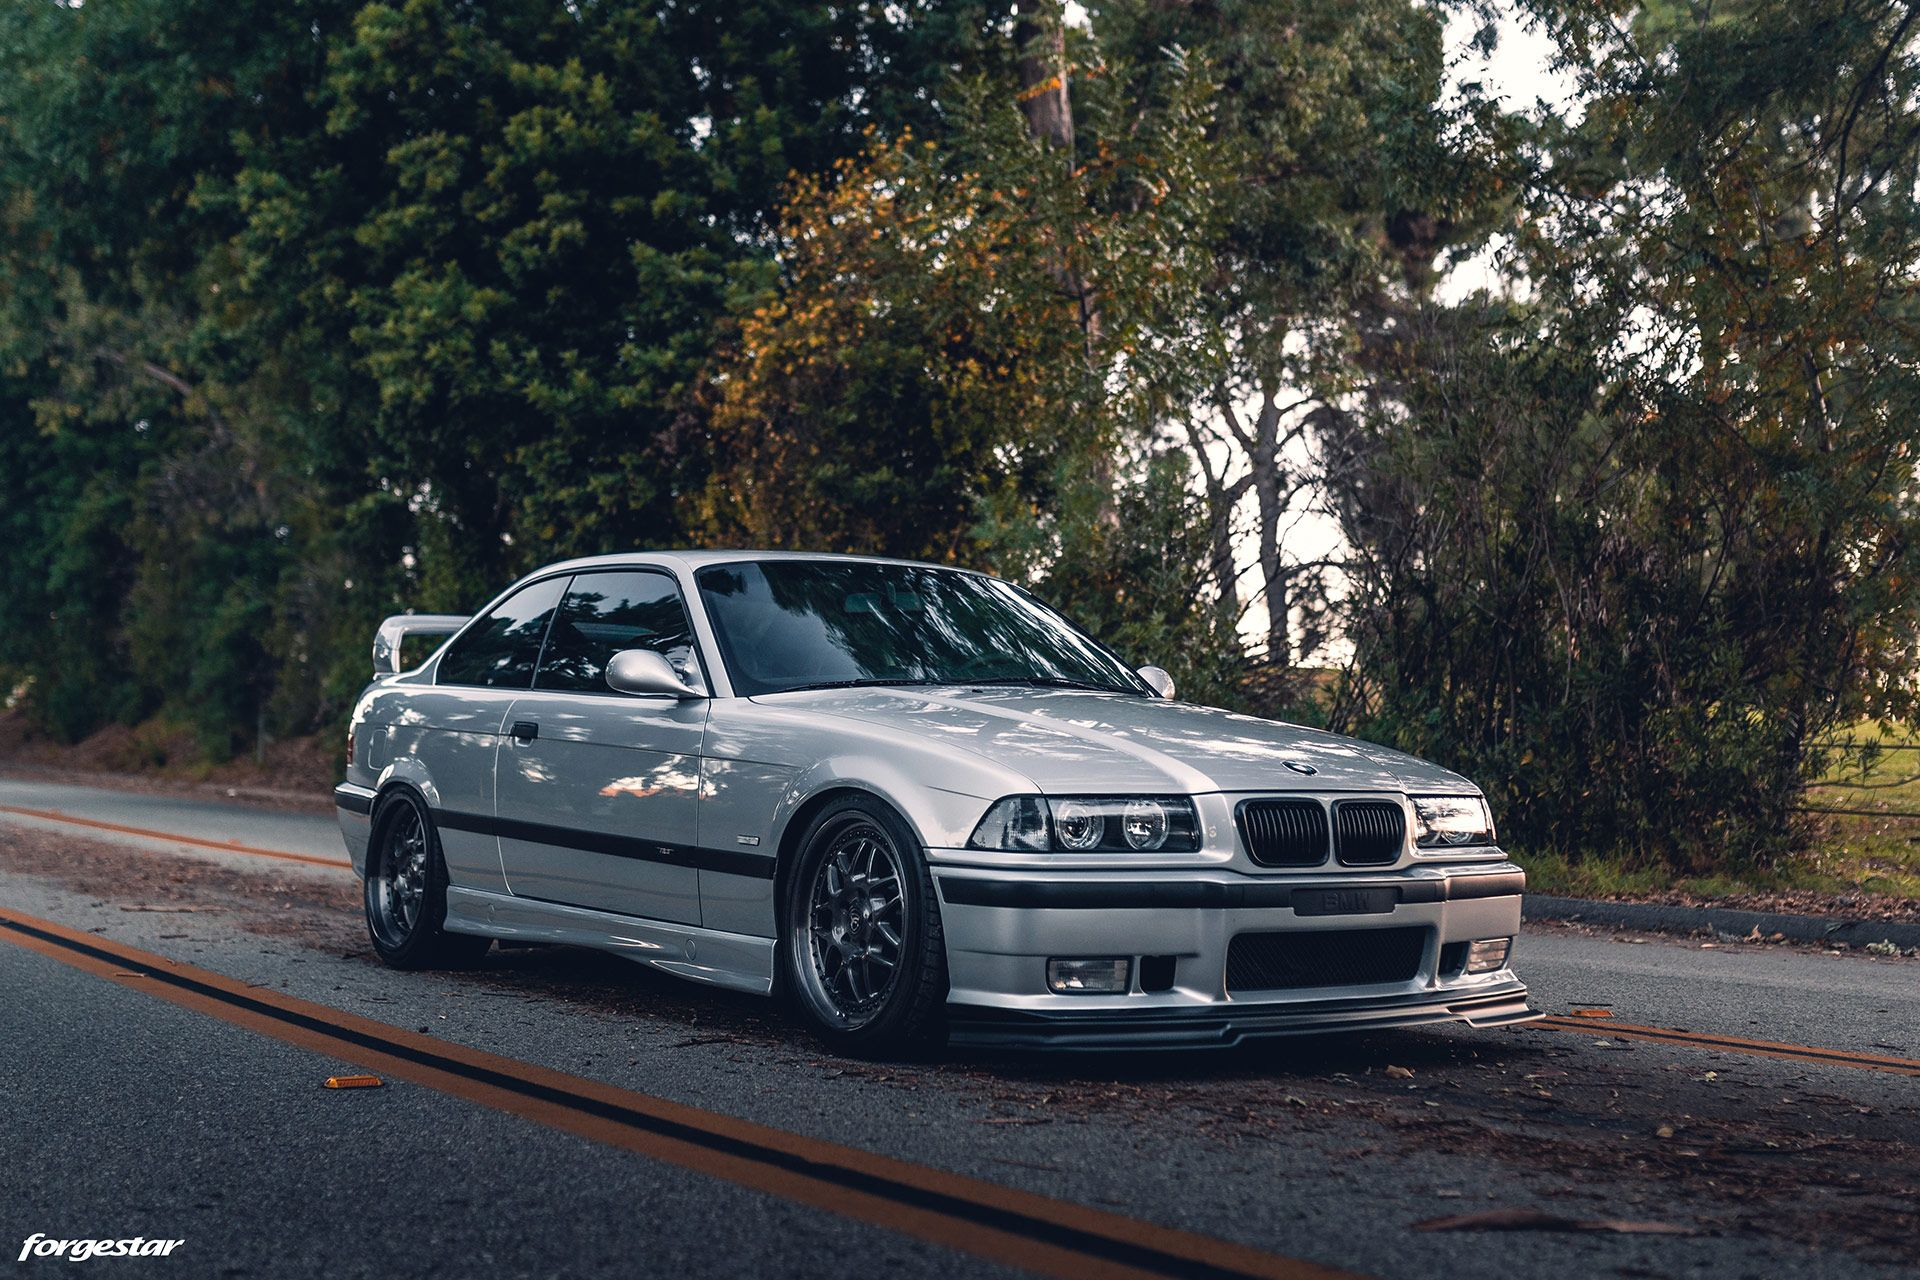 Clean Artic Silver Bmw E36 M3 With Aftermarket Mods And Wheels